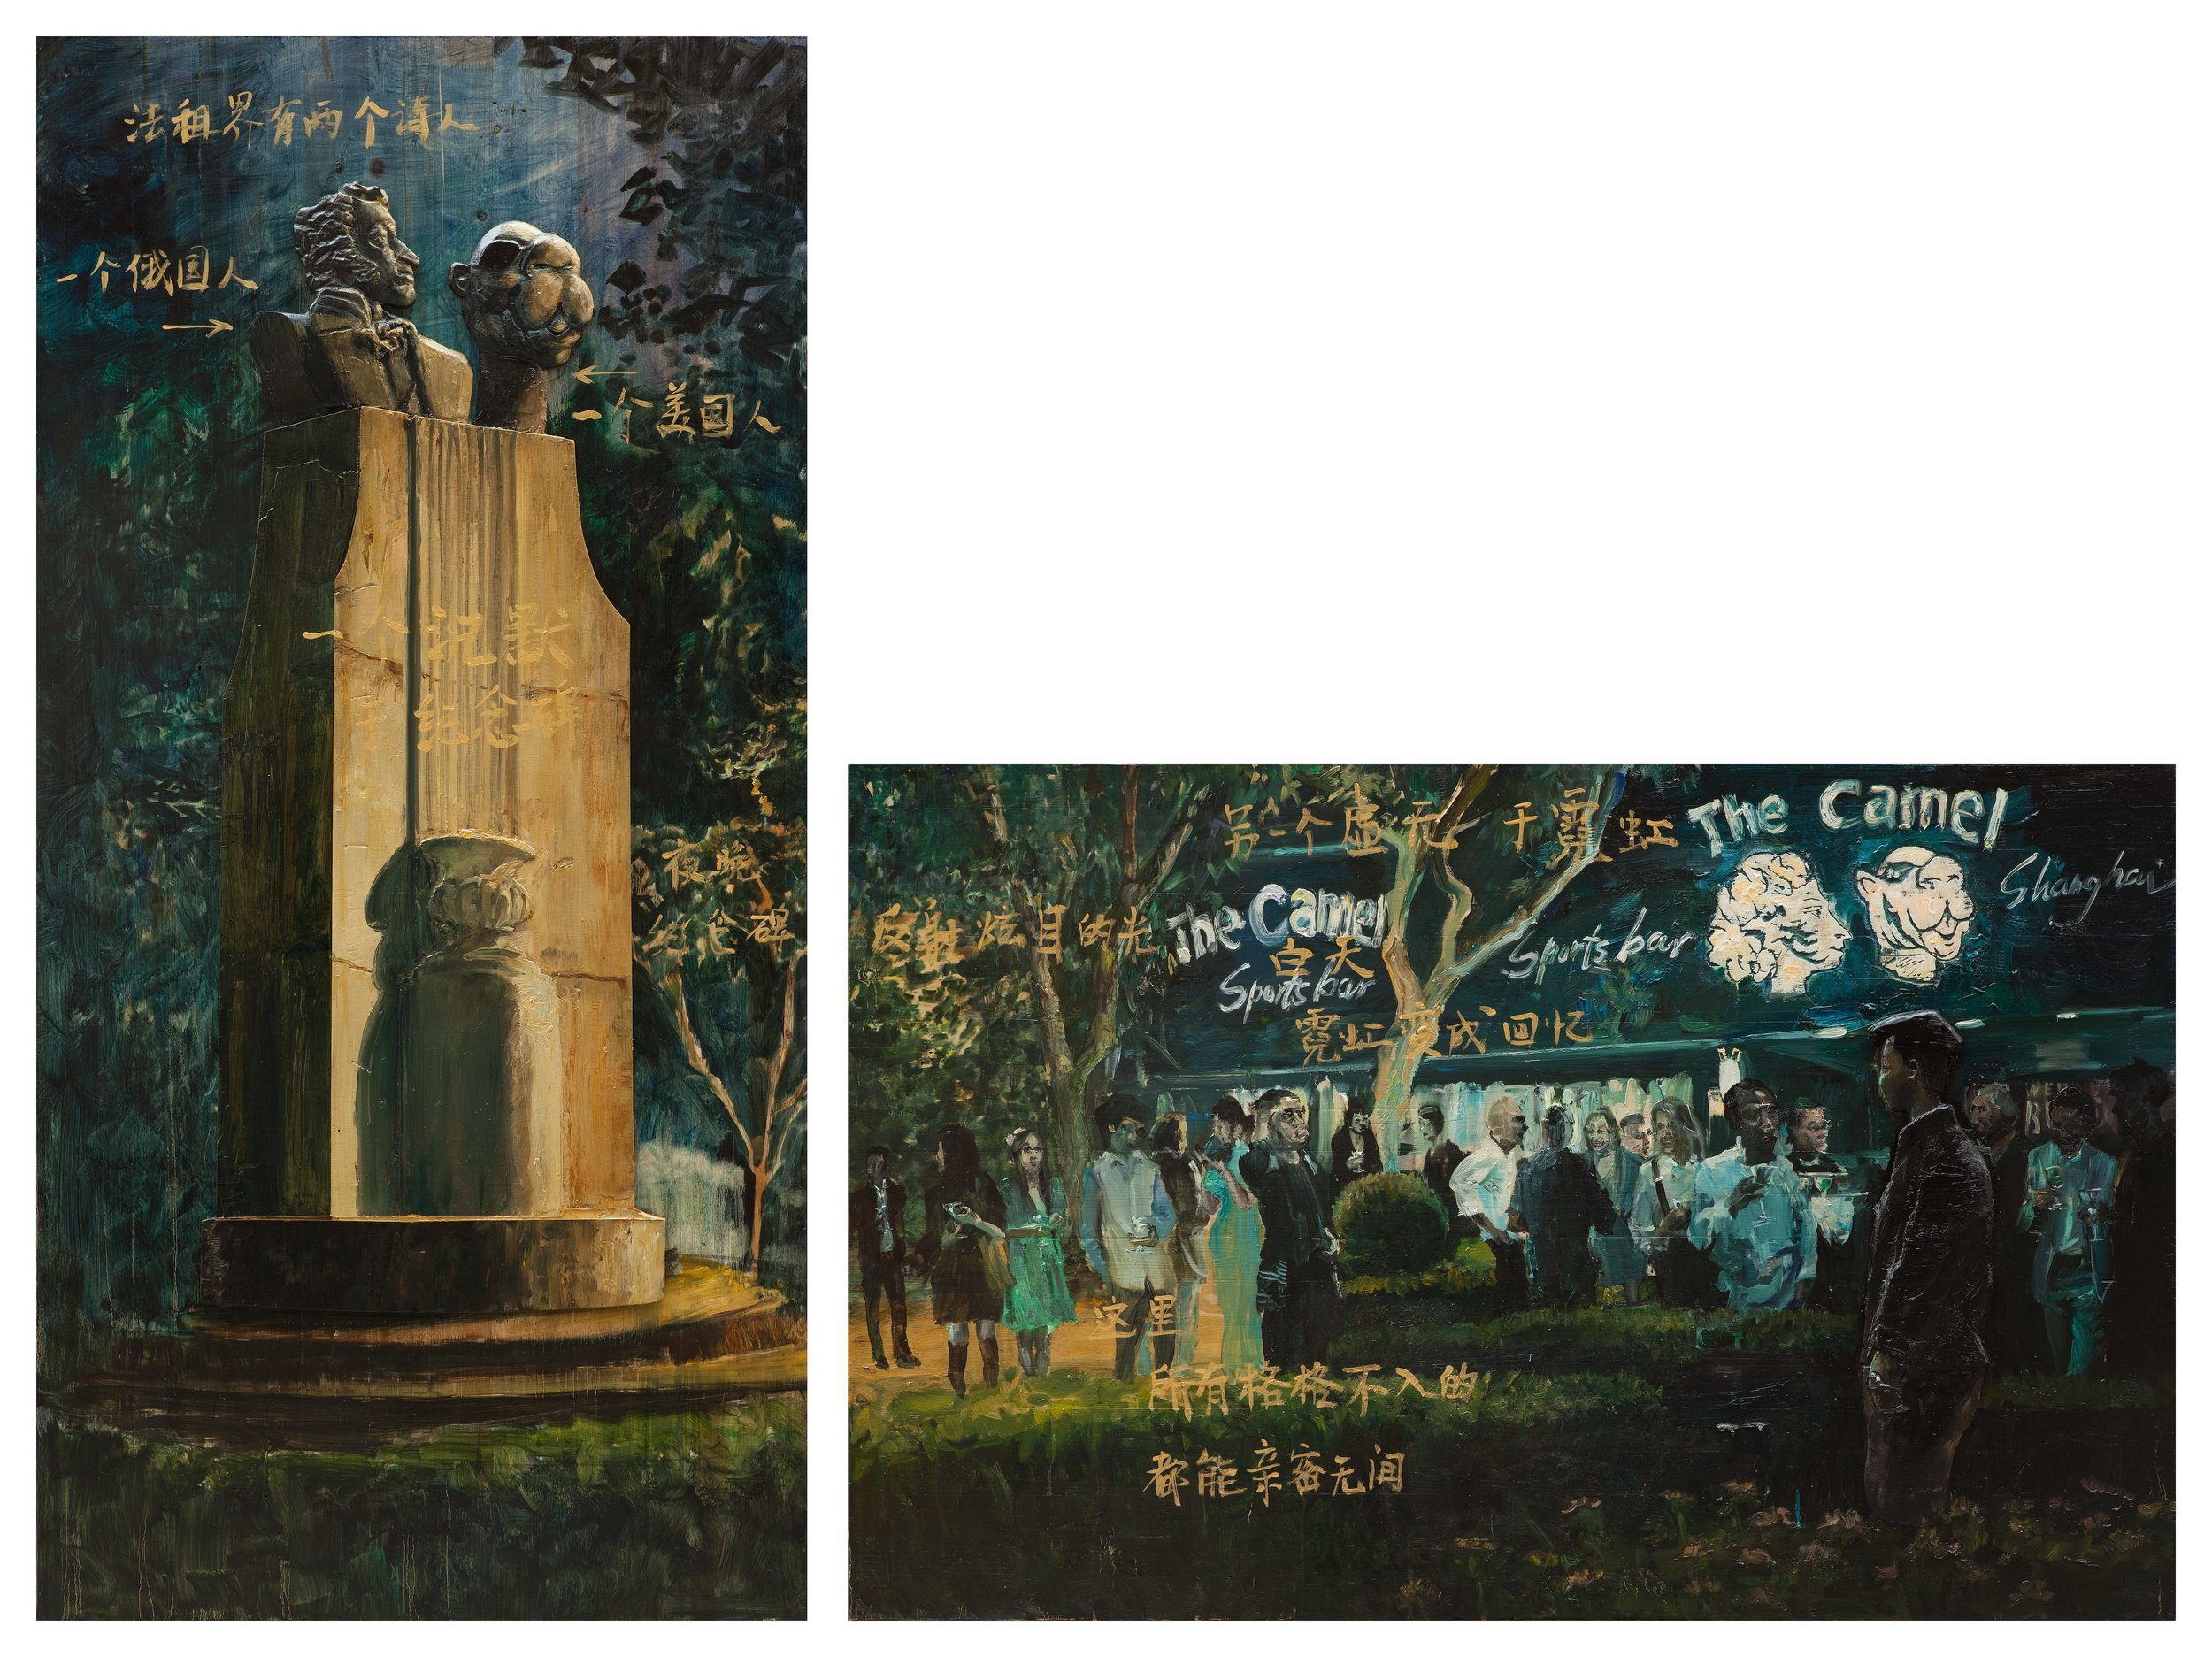 Li Qing 李青, Poets, Party and Me 诗人、派对和我, Wood carving and oil on board 木板雕刻、油彩, 185 x 90 x 7cm + 100 x 155 x 7 cm